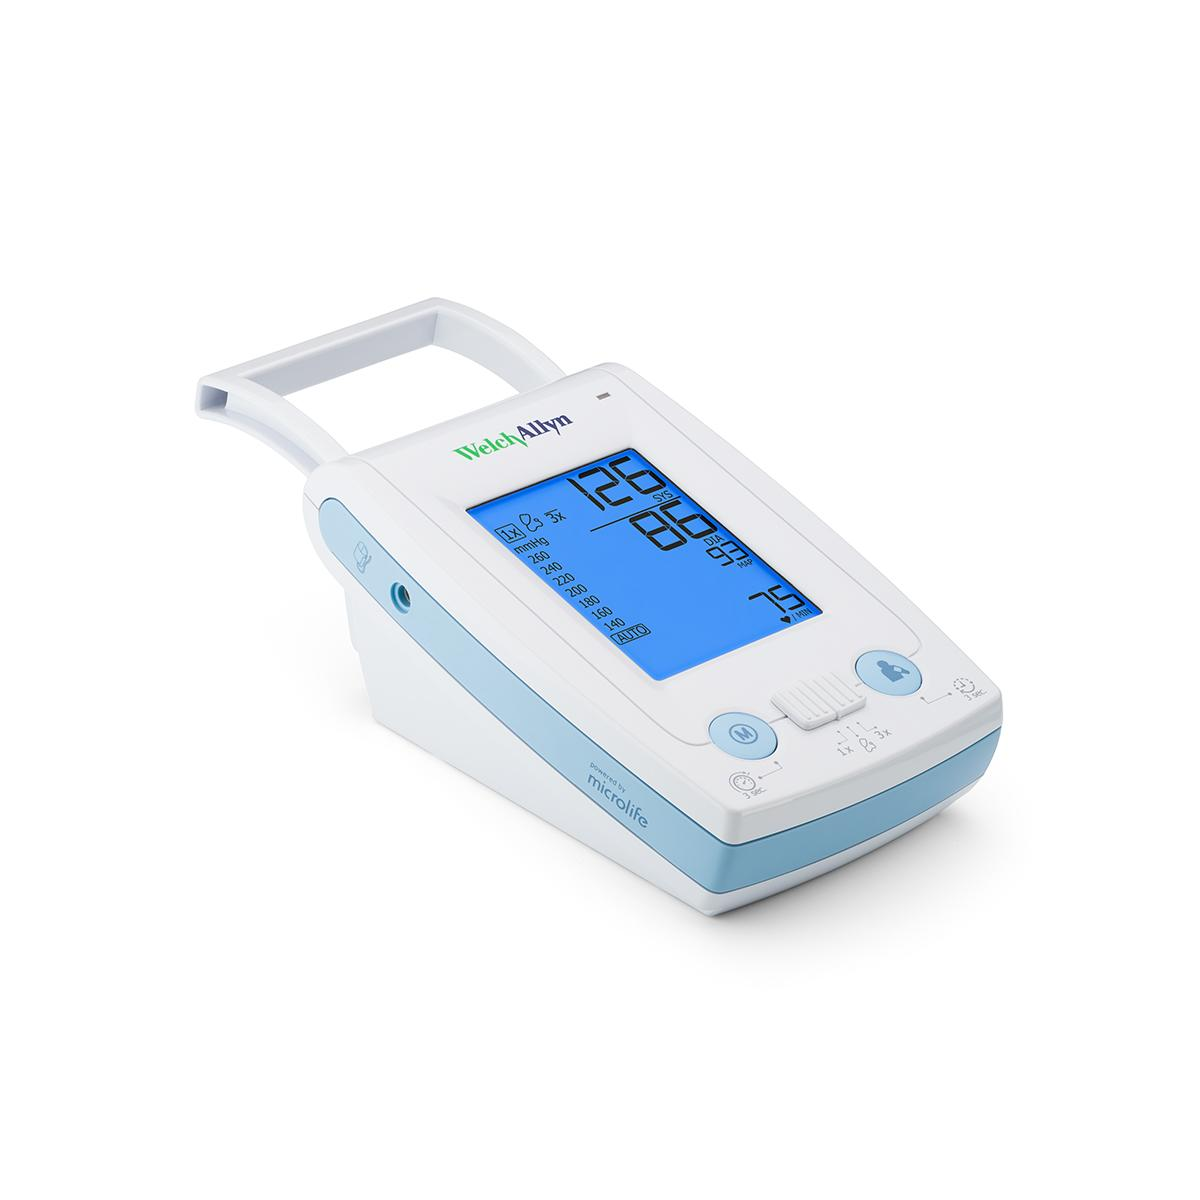 ProBP 2400 Digital Blood Pressure Device diagonal view